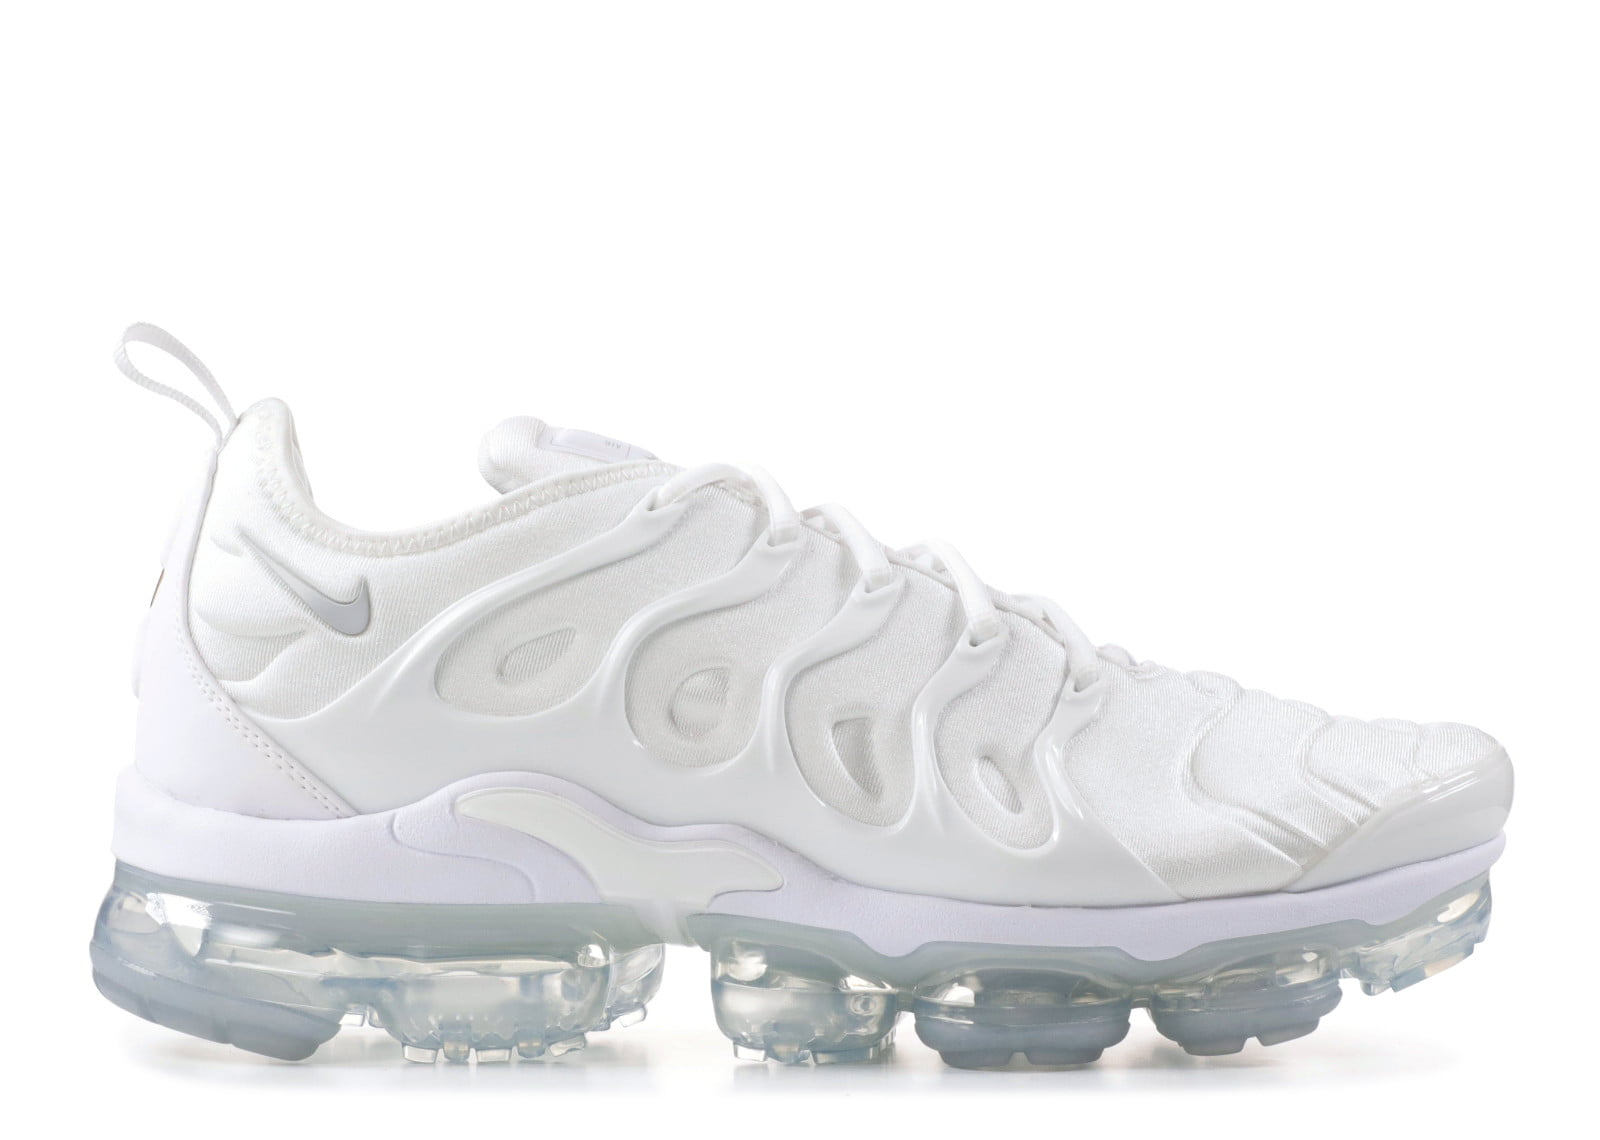 big sale 622d7 a85fc Nike - Men - Air Vapormax Plus 'Triple White' - 924453-100 - Size 11